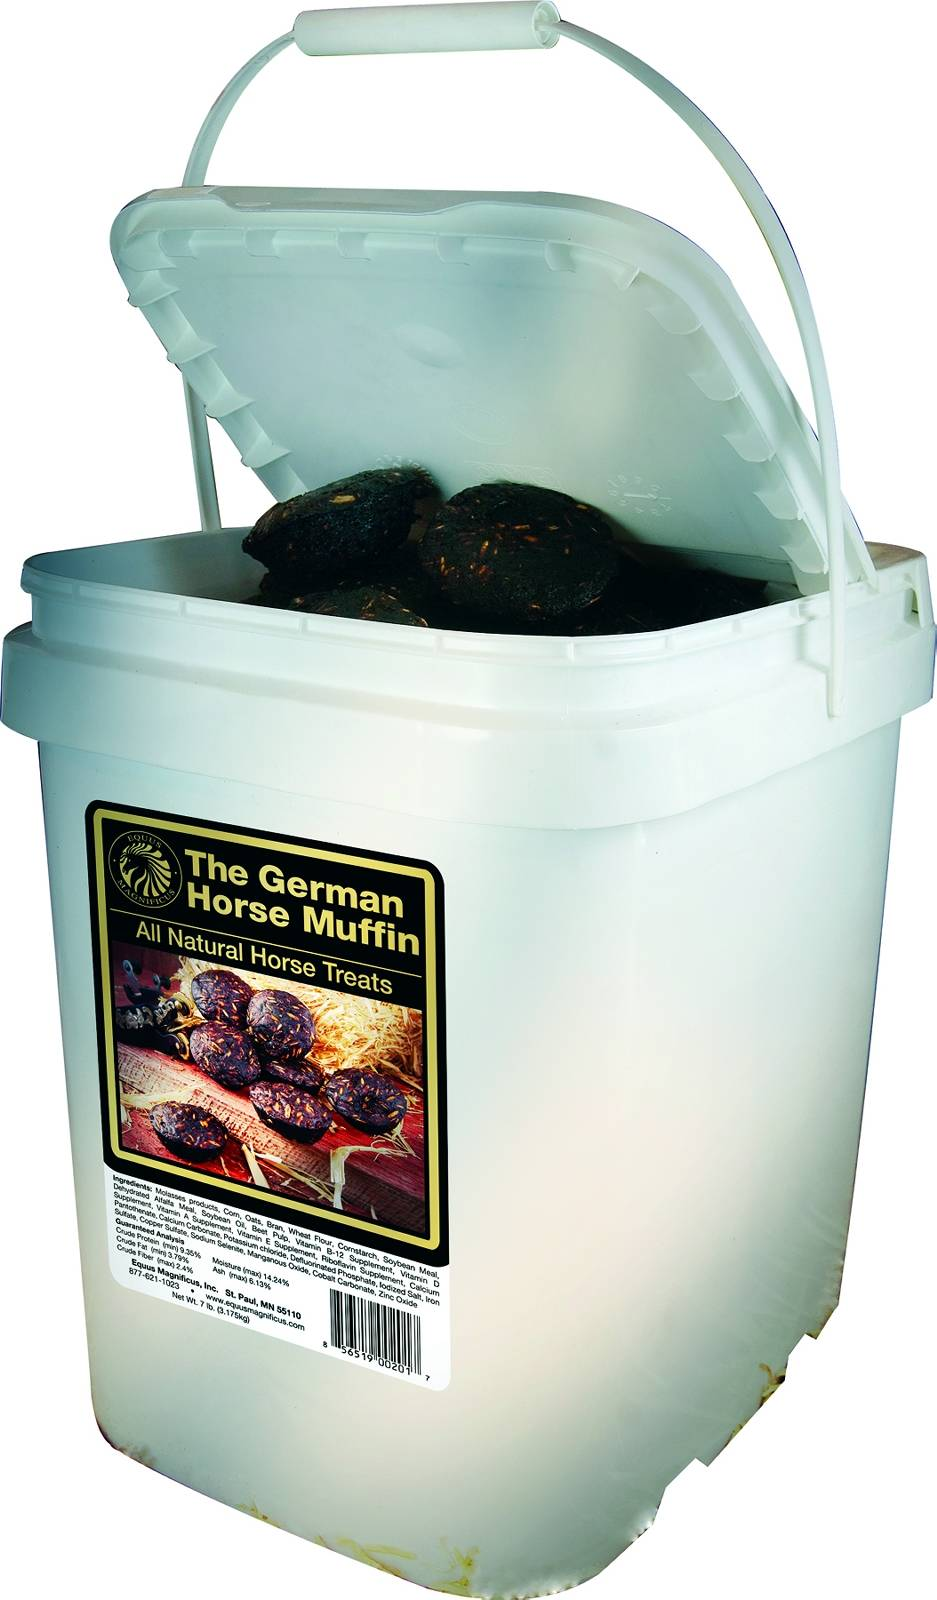 German Horse Muffin All Natural Horse Treats